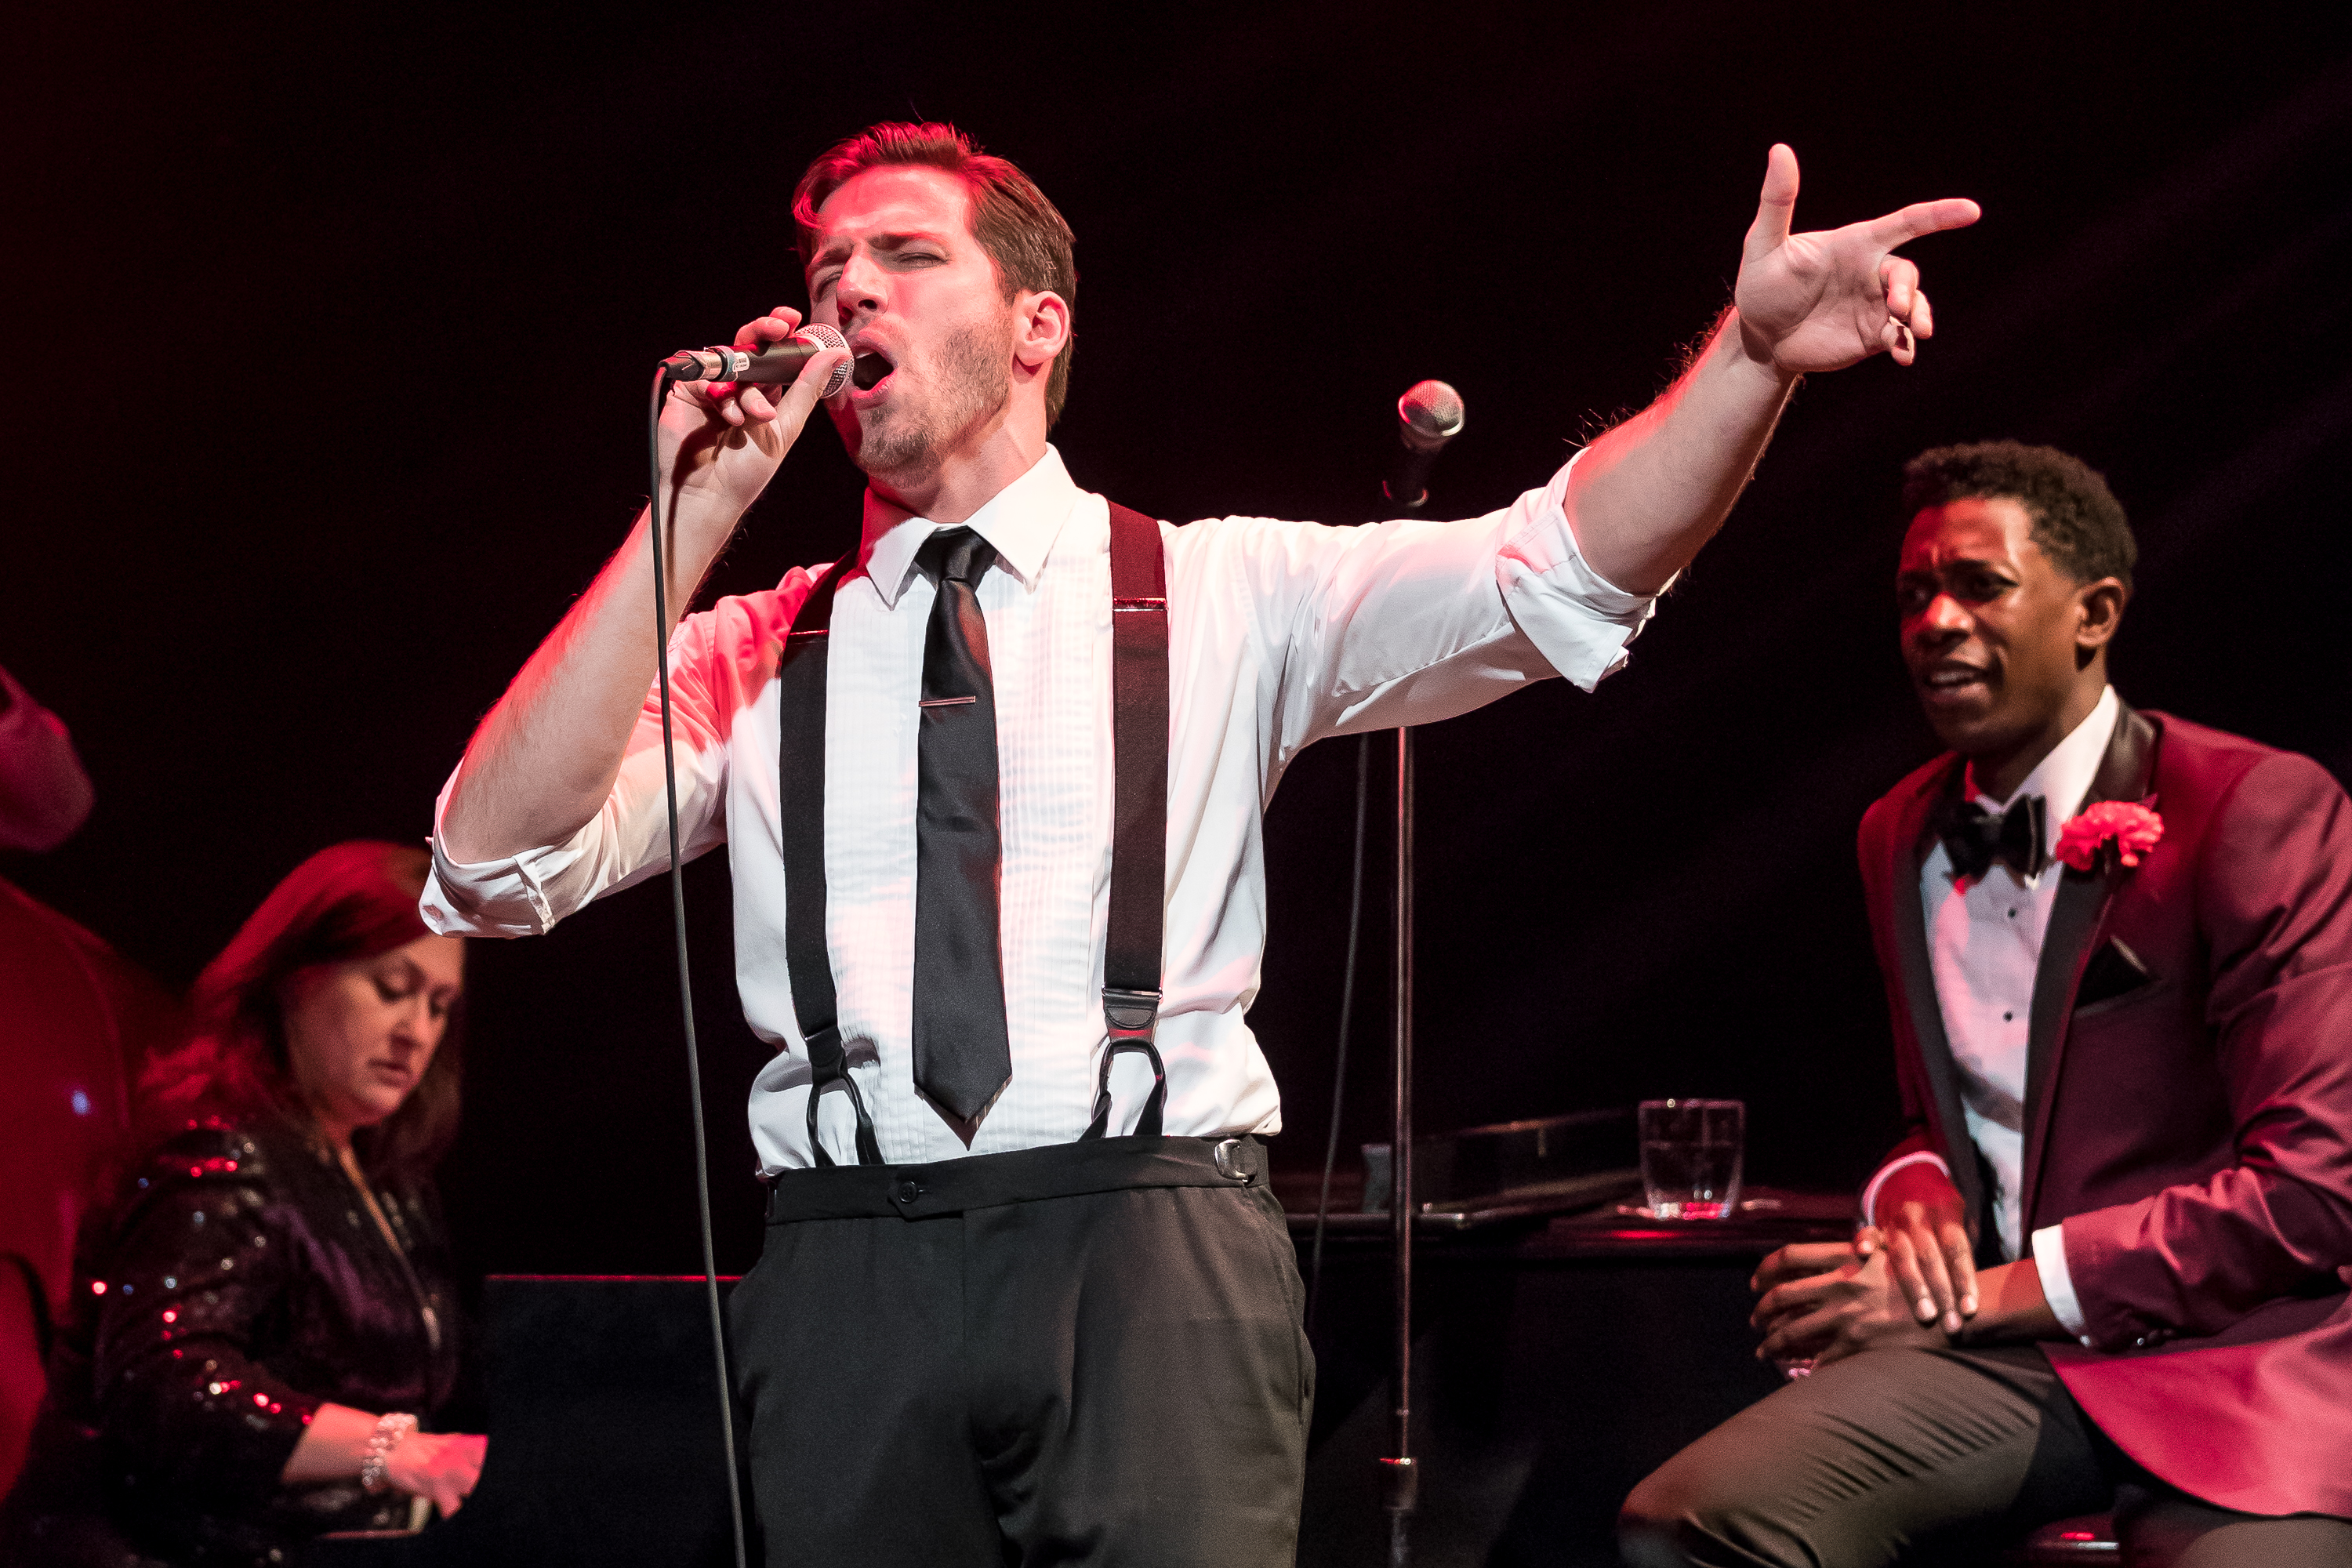 Theater Review: I LEFT MY HEART: A SALUTE TO THE MUSIC OF